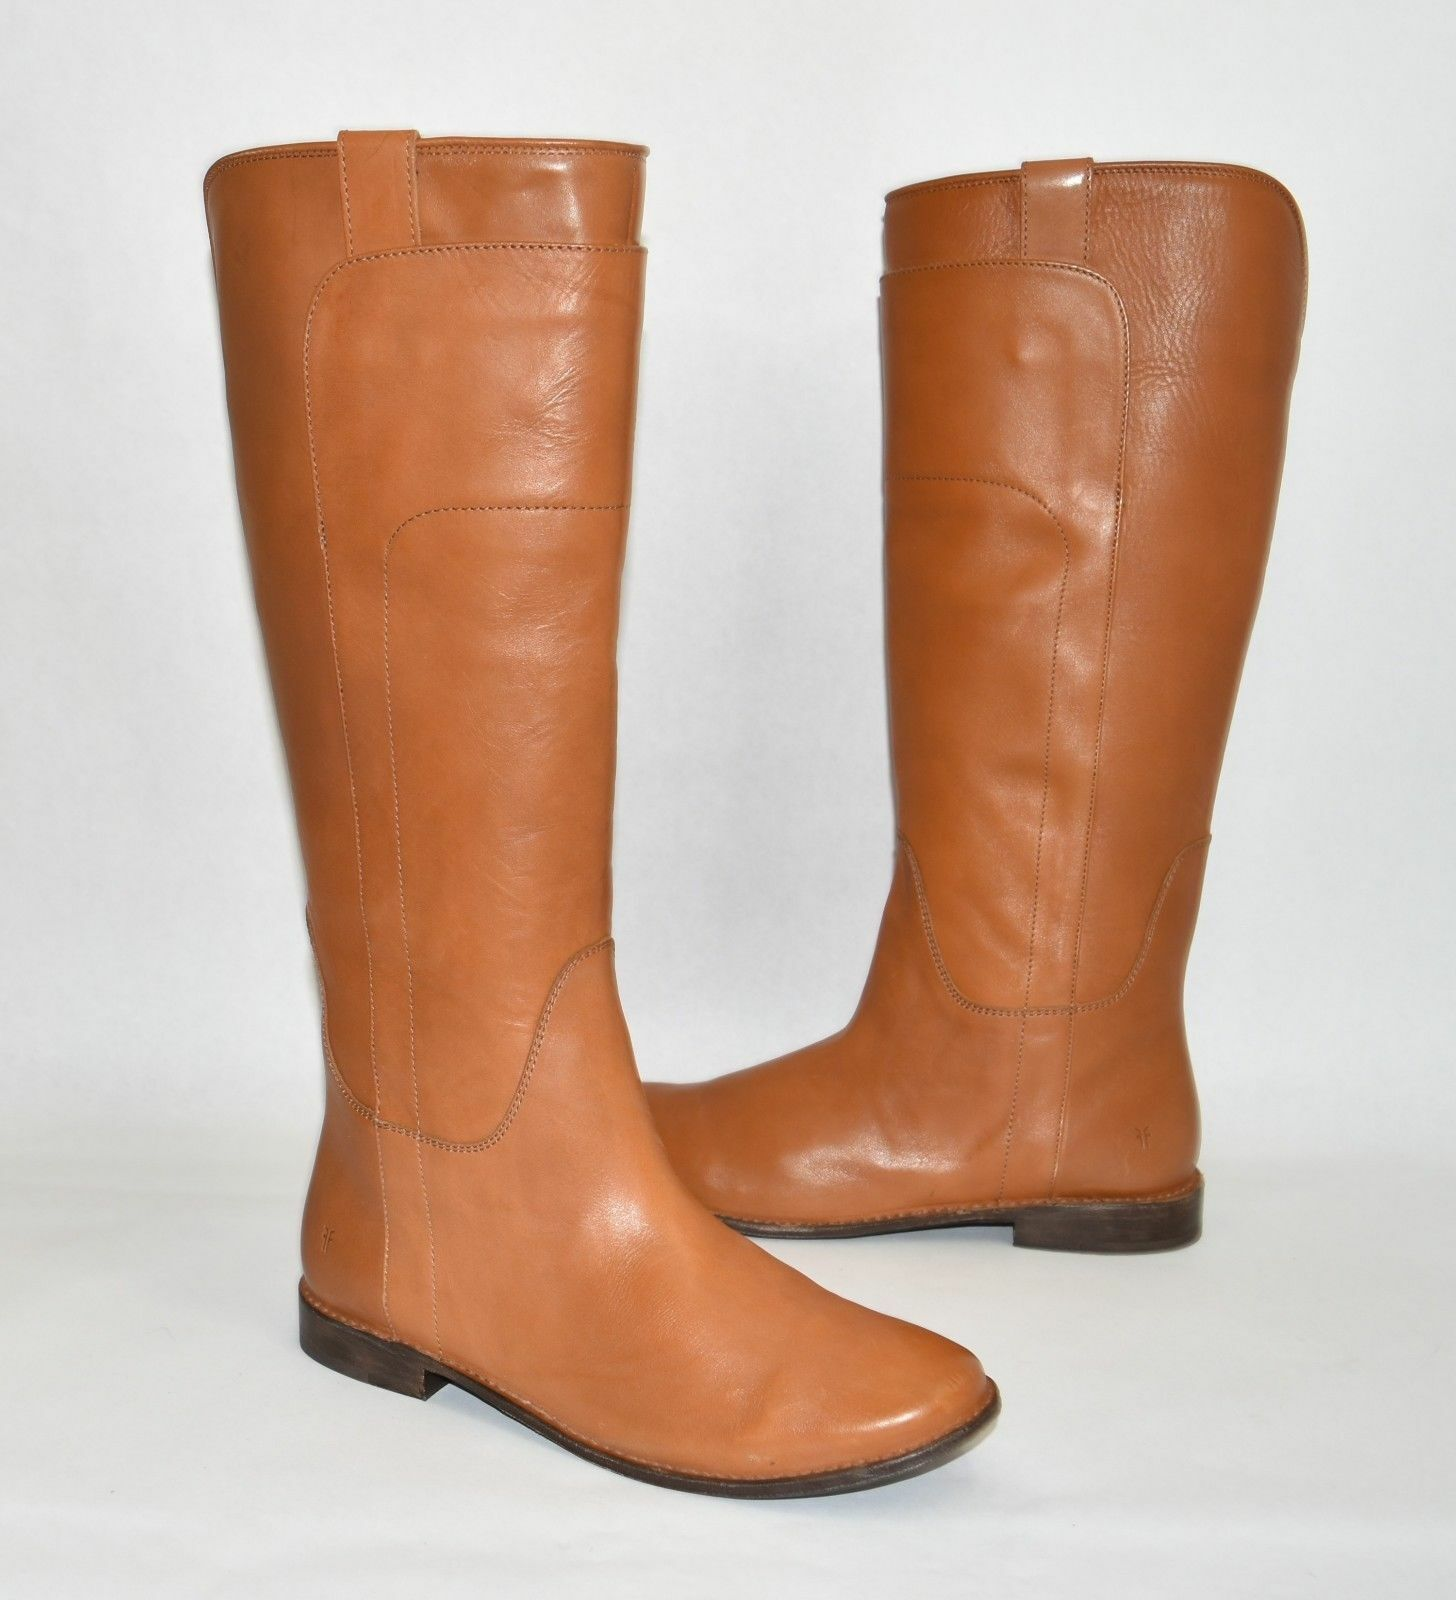 New  Frye 'Paige' Tall Leather Riding Boot Cognac Cognac Cognac Leather Size 10 B  3476536 1224df